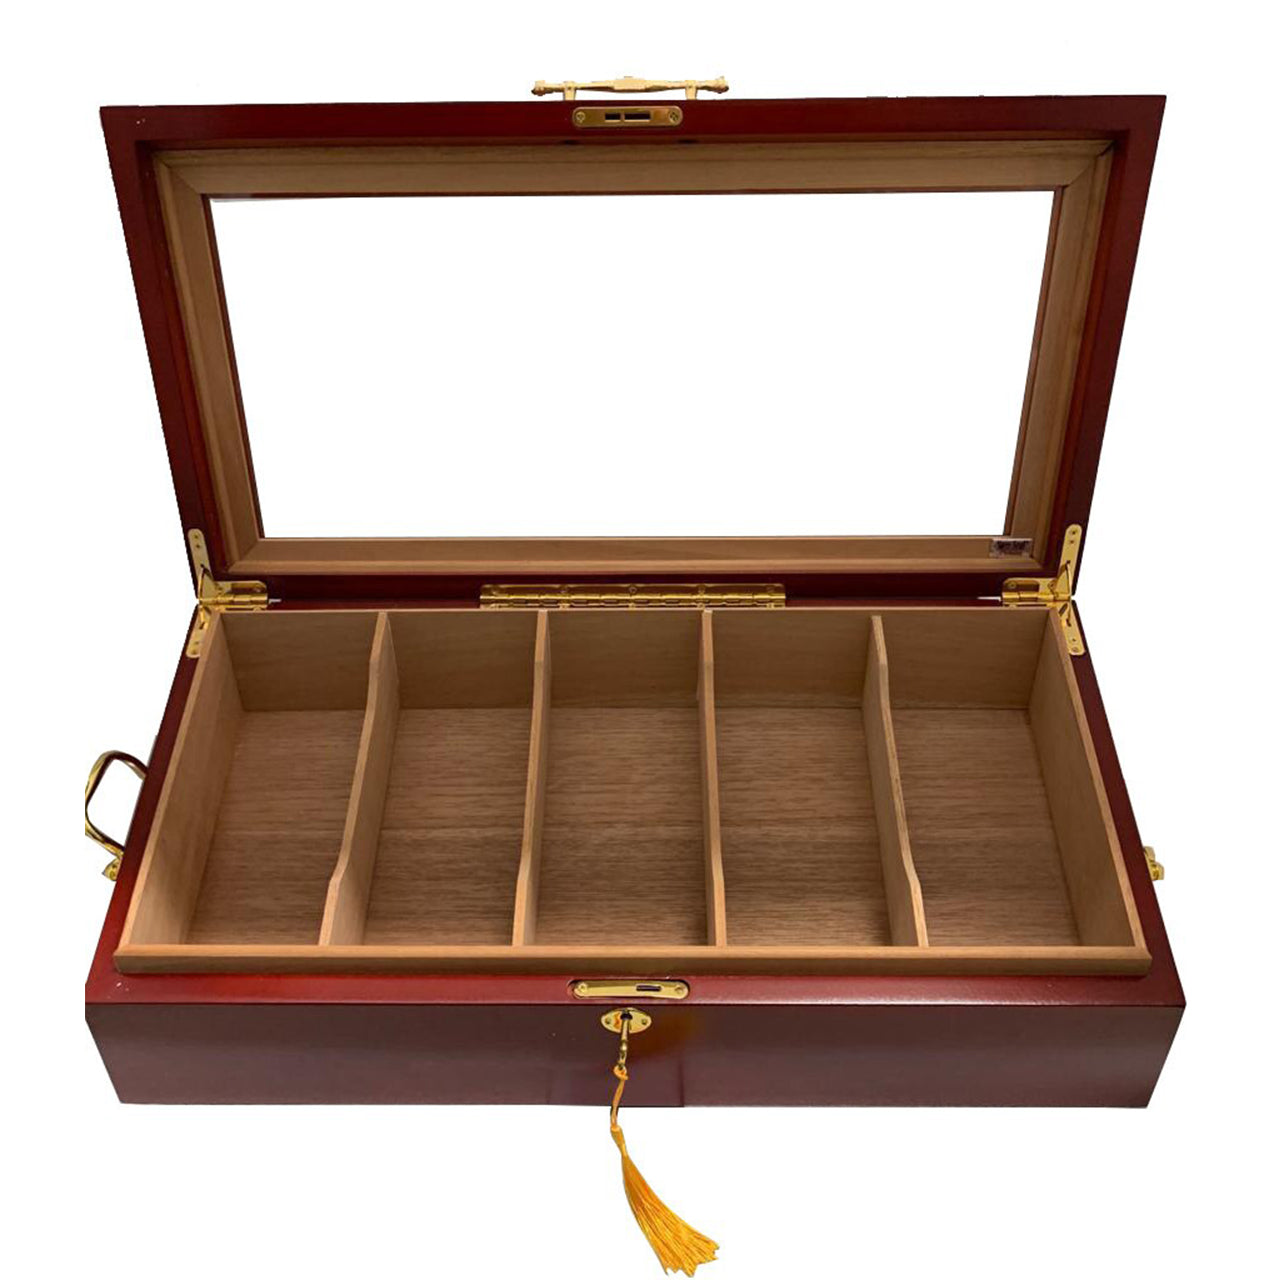 Desk/Counter Top Display Humidor for up to 100 Cigars